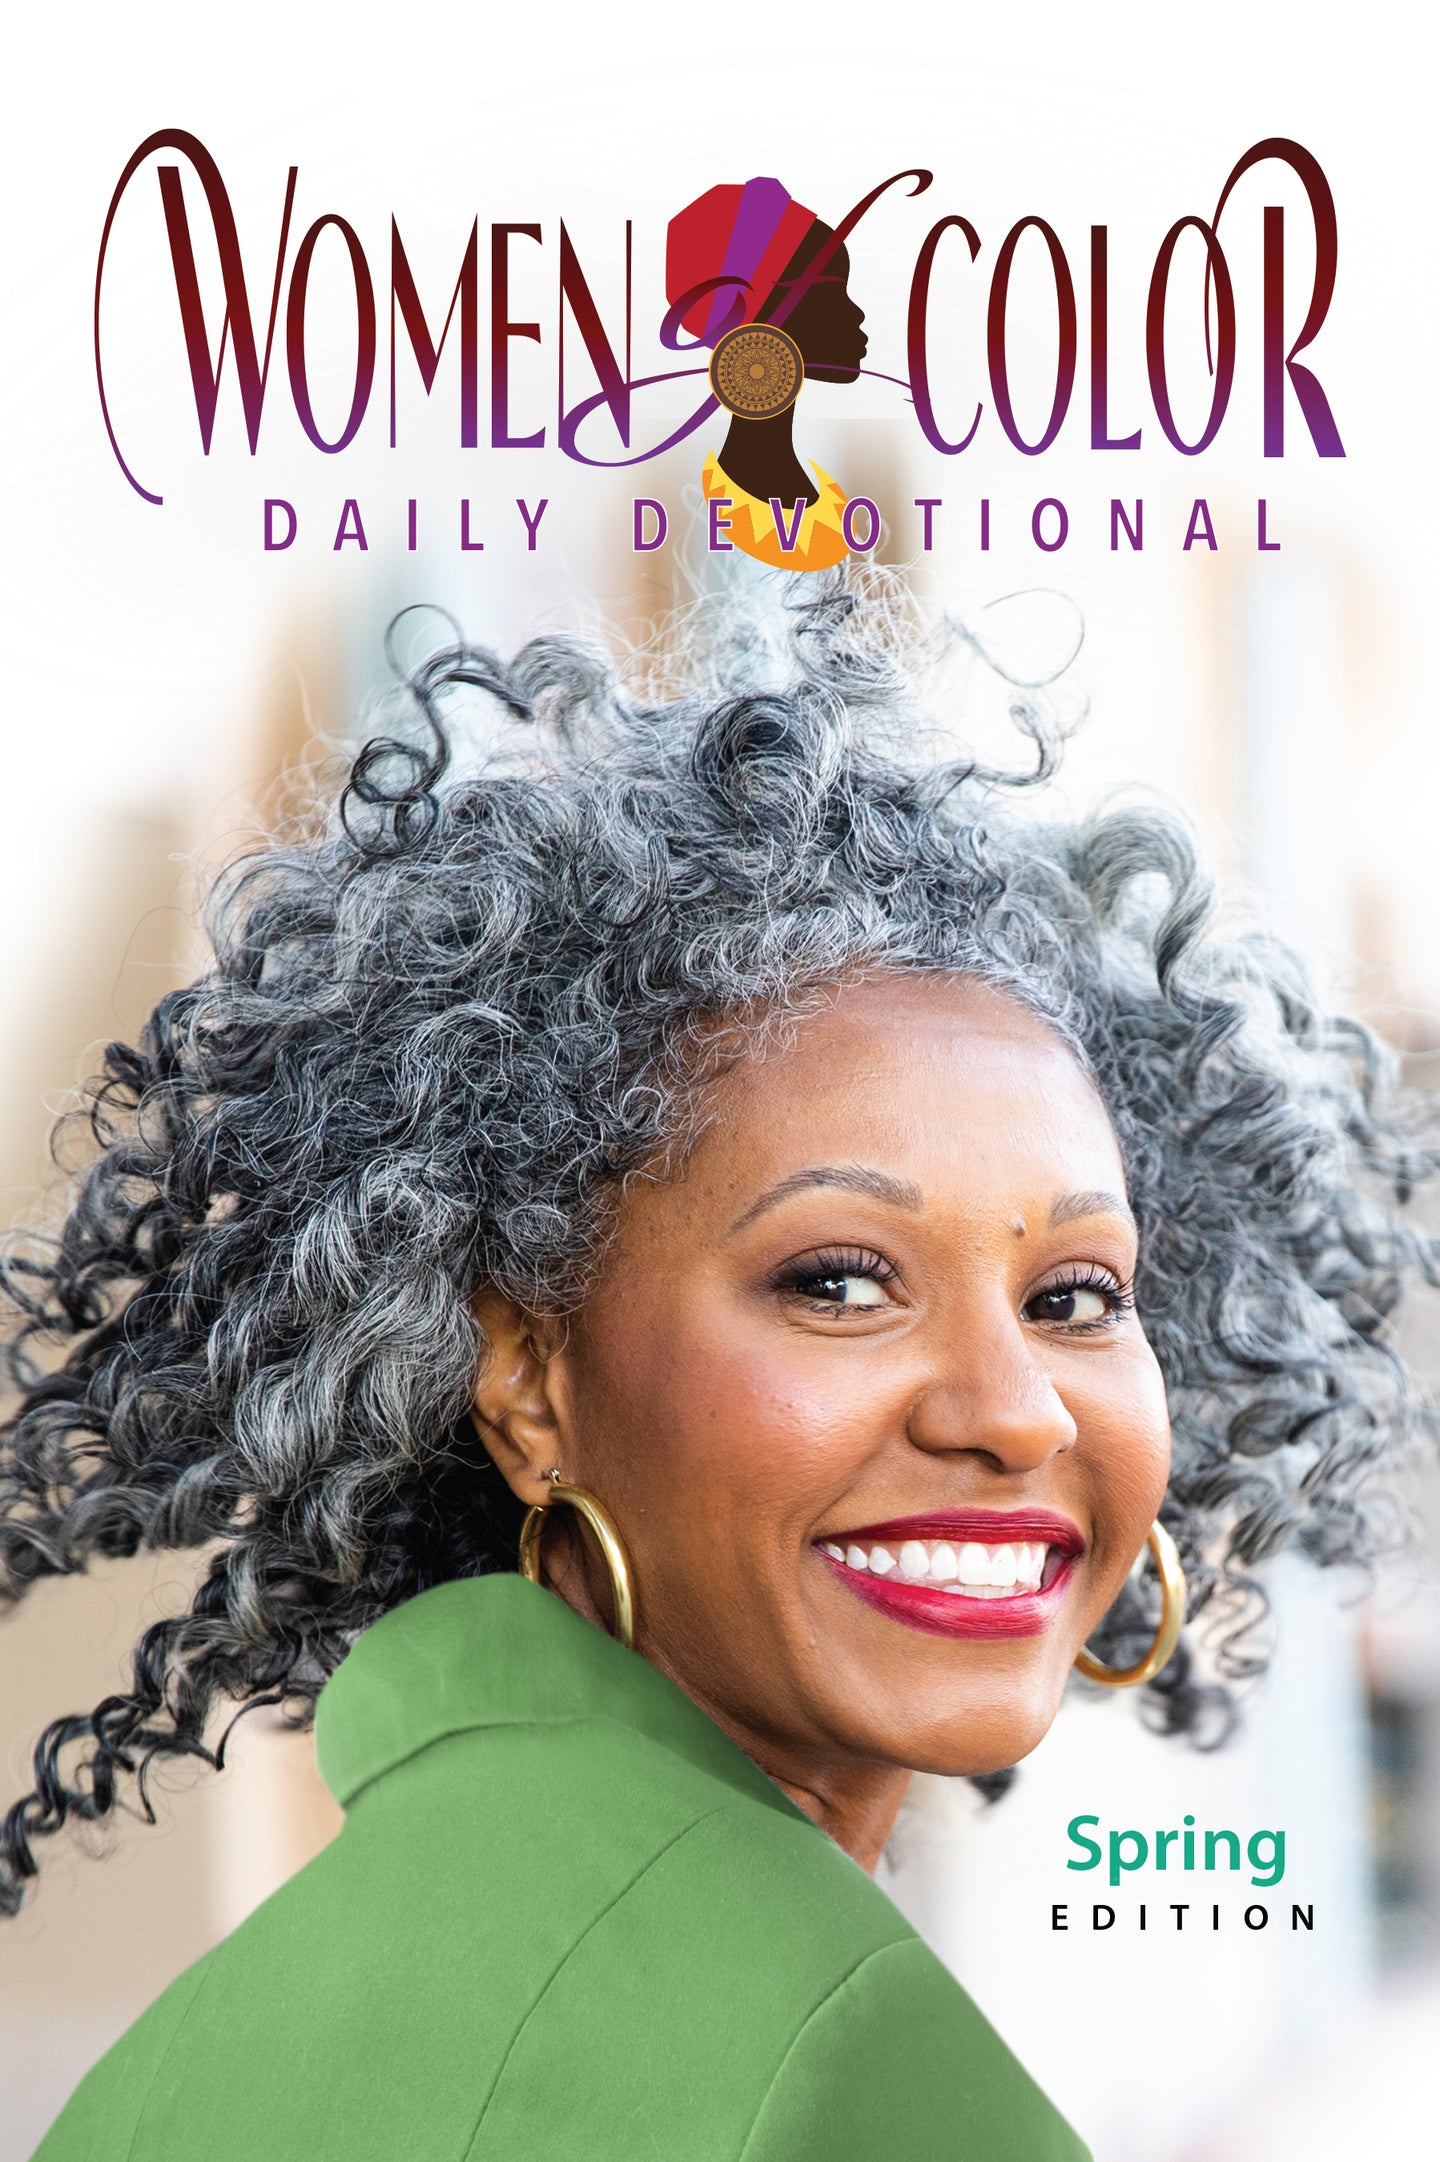 Women of Color Daily Devotional Spring Edition